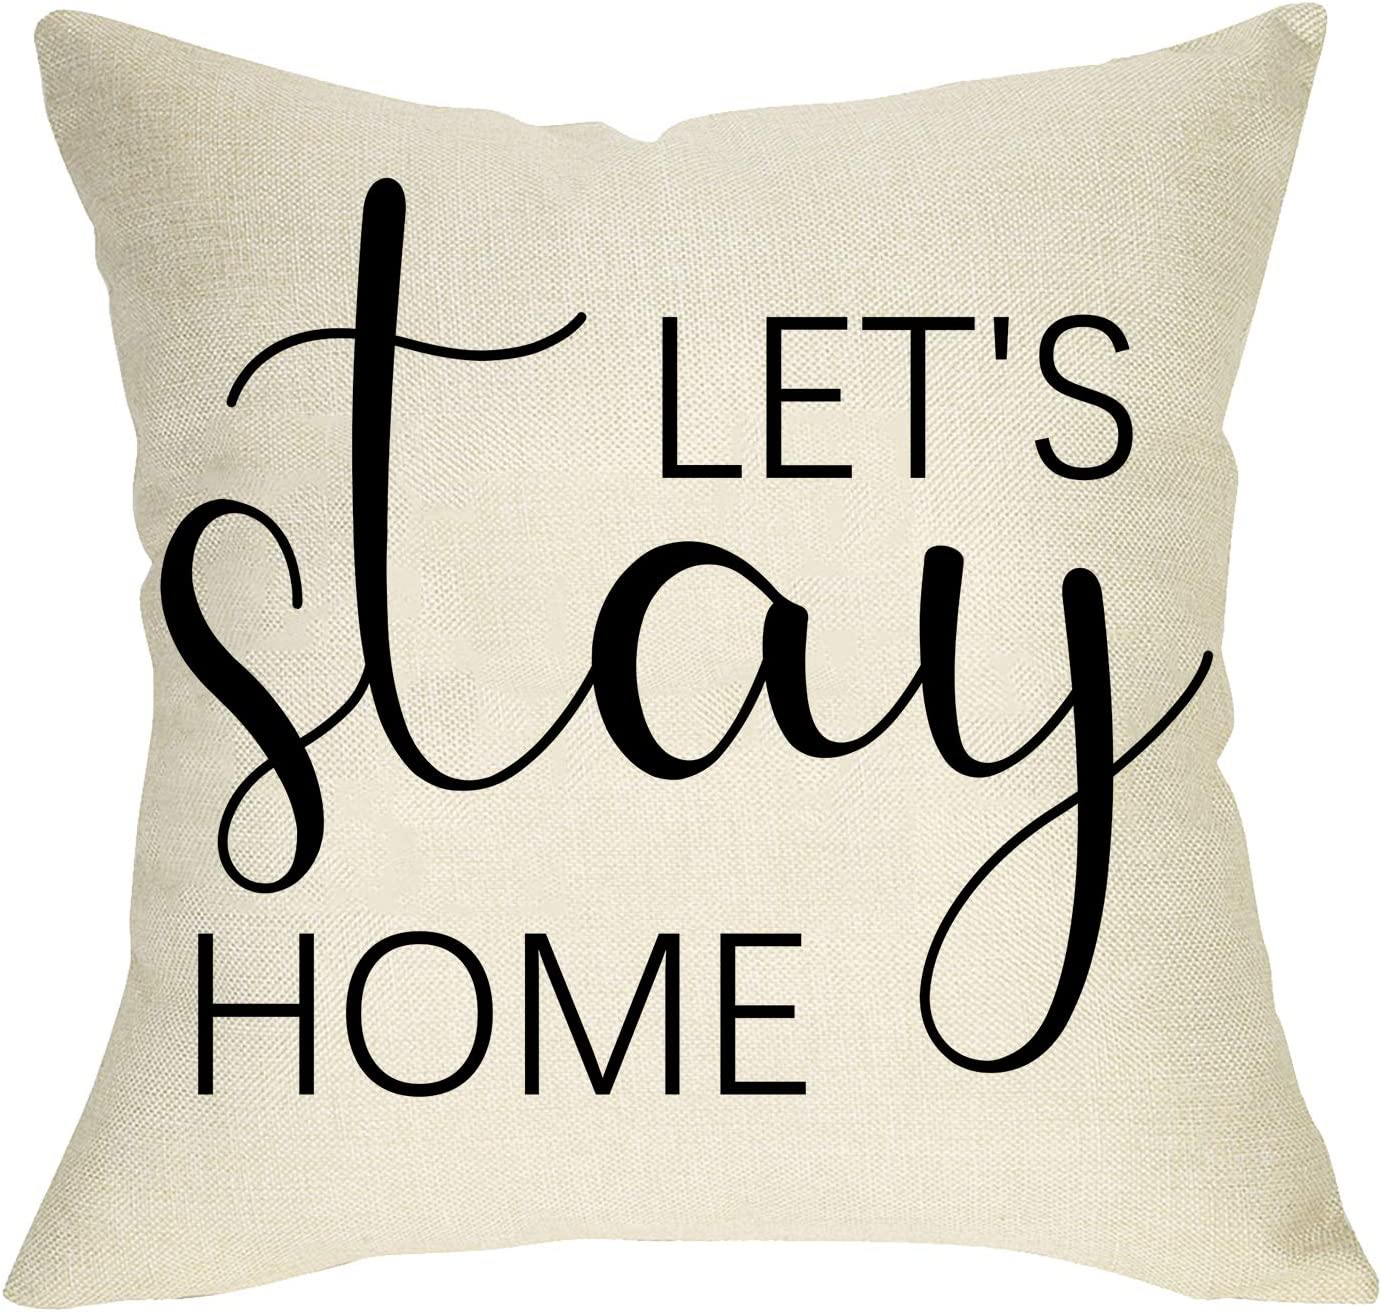 Pycat Let's Stay Home Throw Pillow Cover 18 x 18 Sofa Couch Rustic Decoration Farmhouse Home Décor Housewarming Gift Quote Decorative Pillowcase Cotton Linen Cushion Case